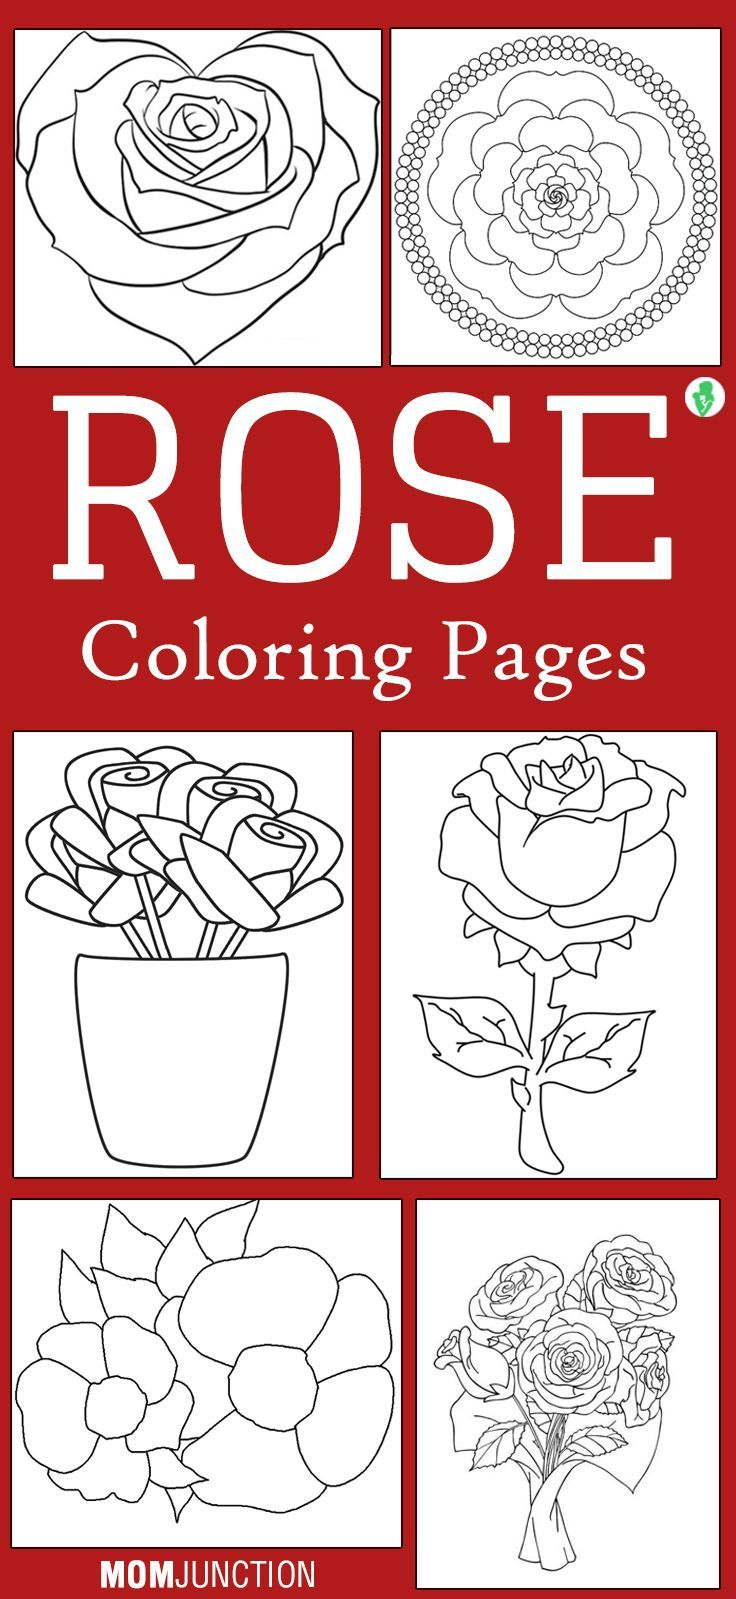 Top 25 Free Printable Beautiful Rose Coloring Pages for Kids | Rose ...